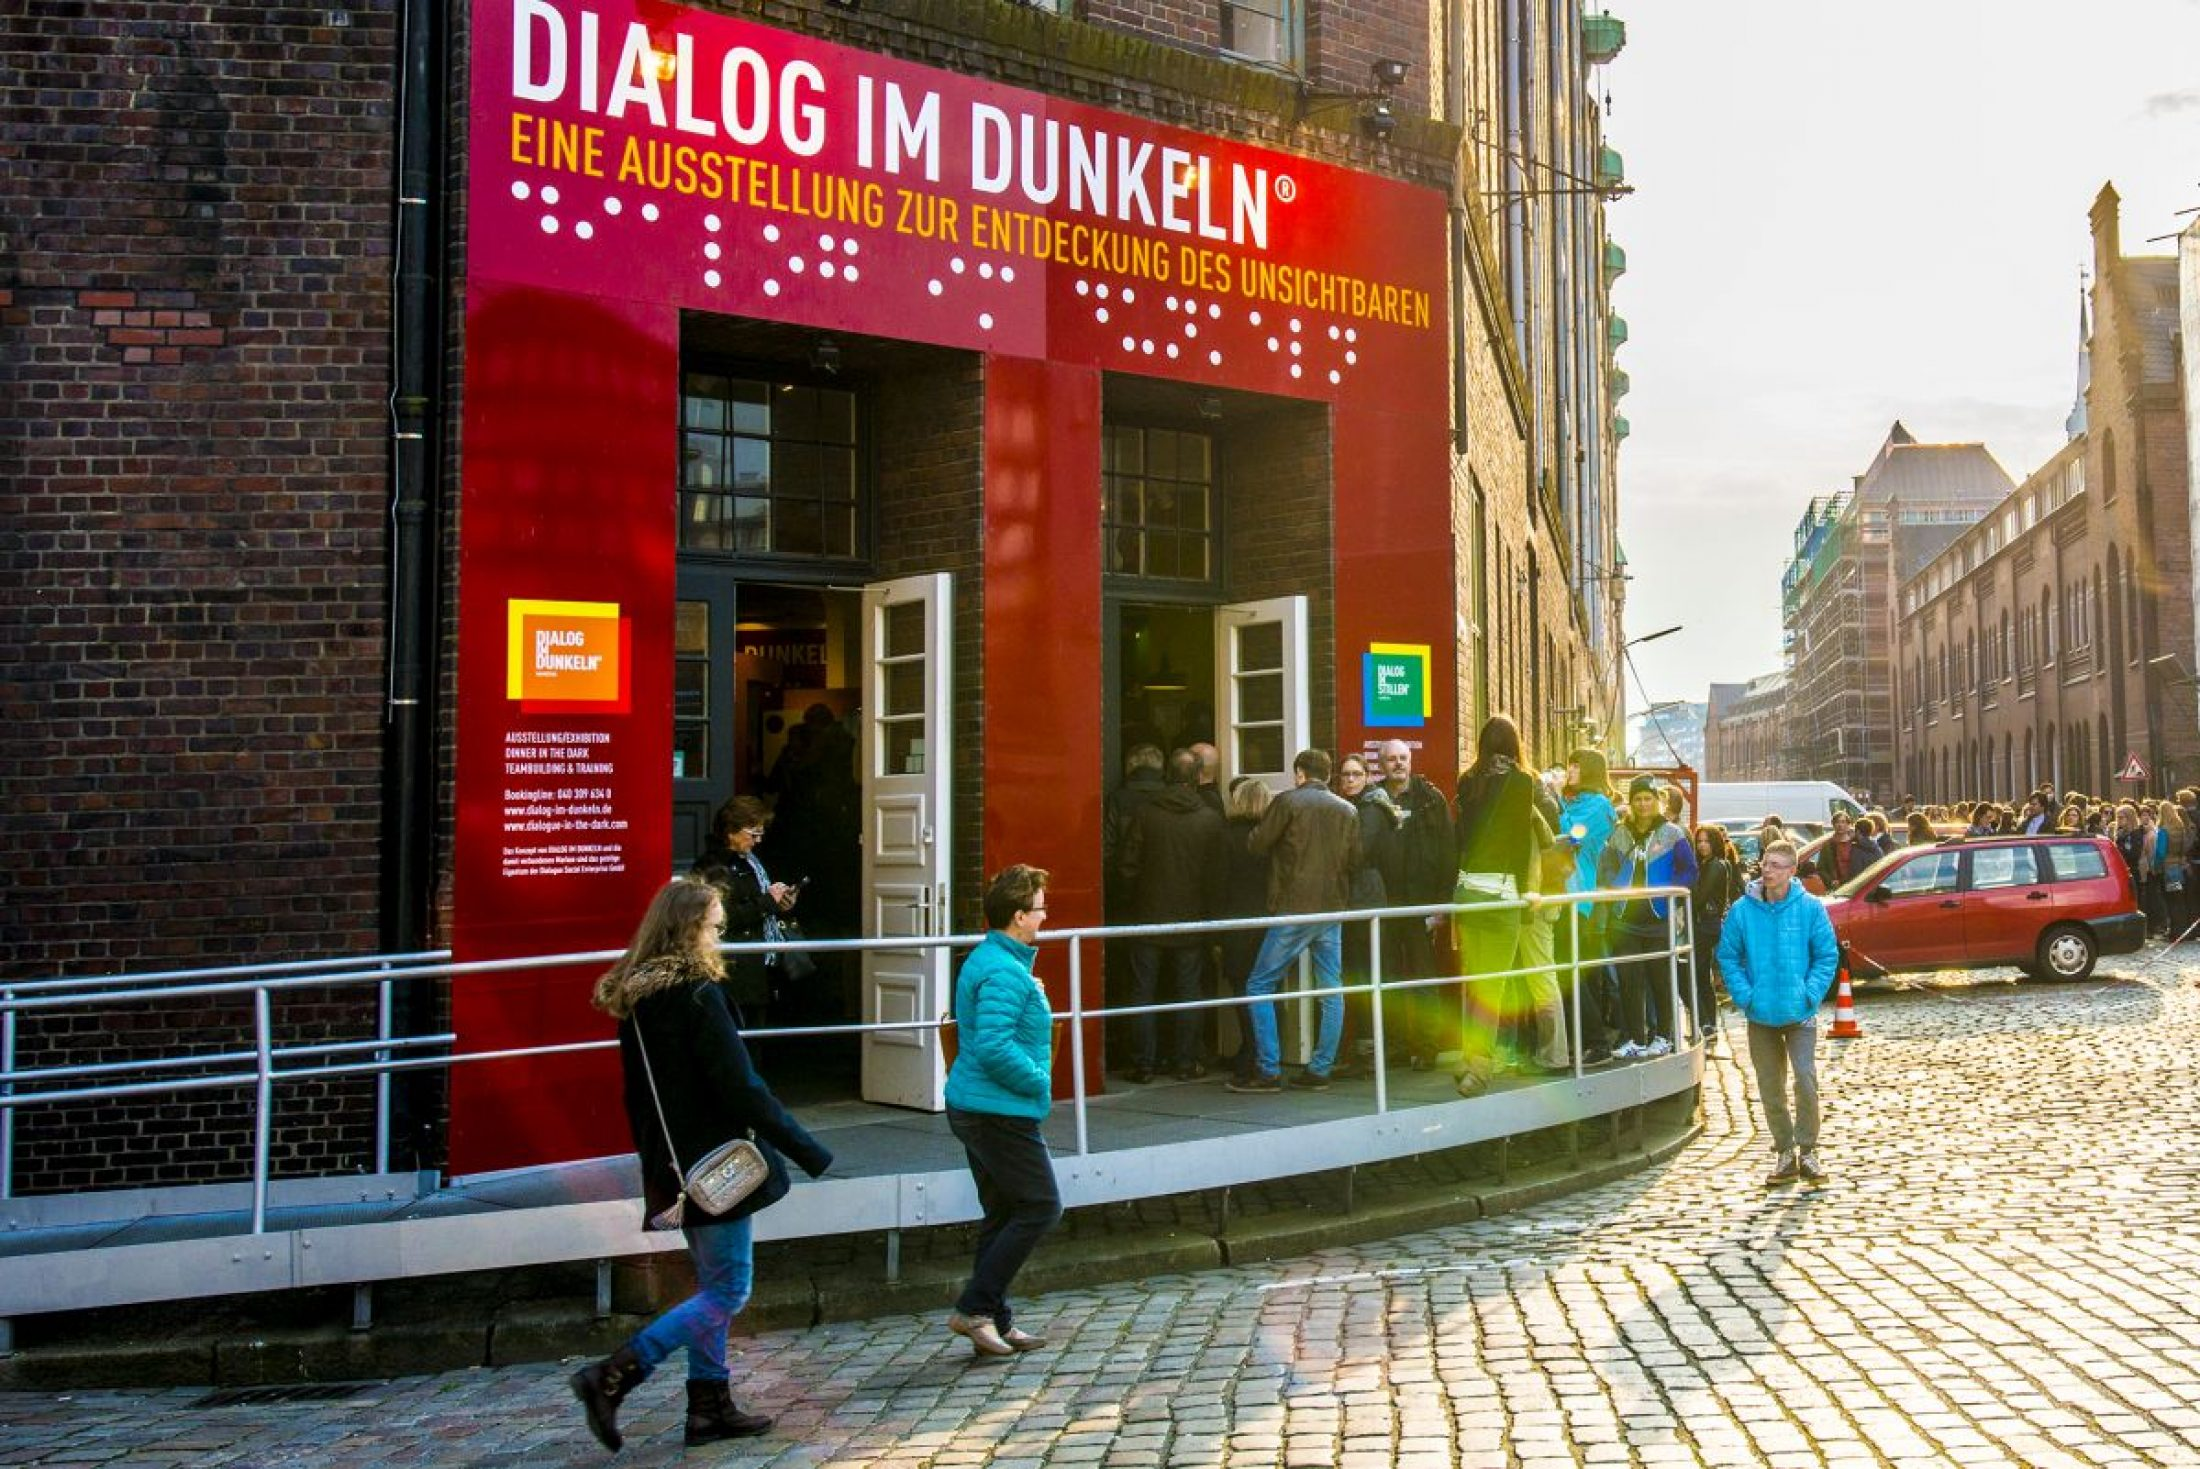 Queues stretch across the street for Hamburg's 'Dialogue in the Dark'